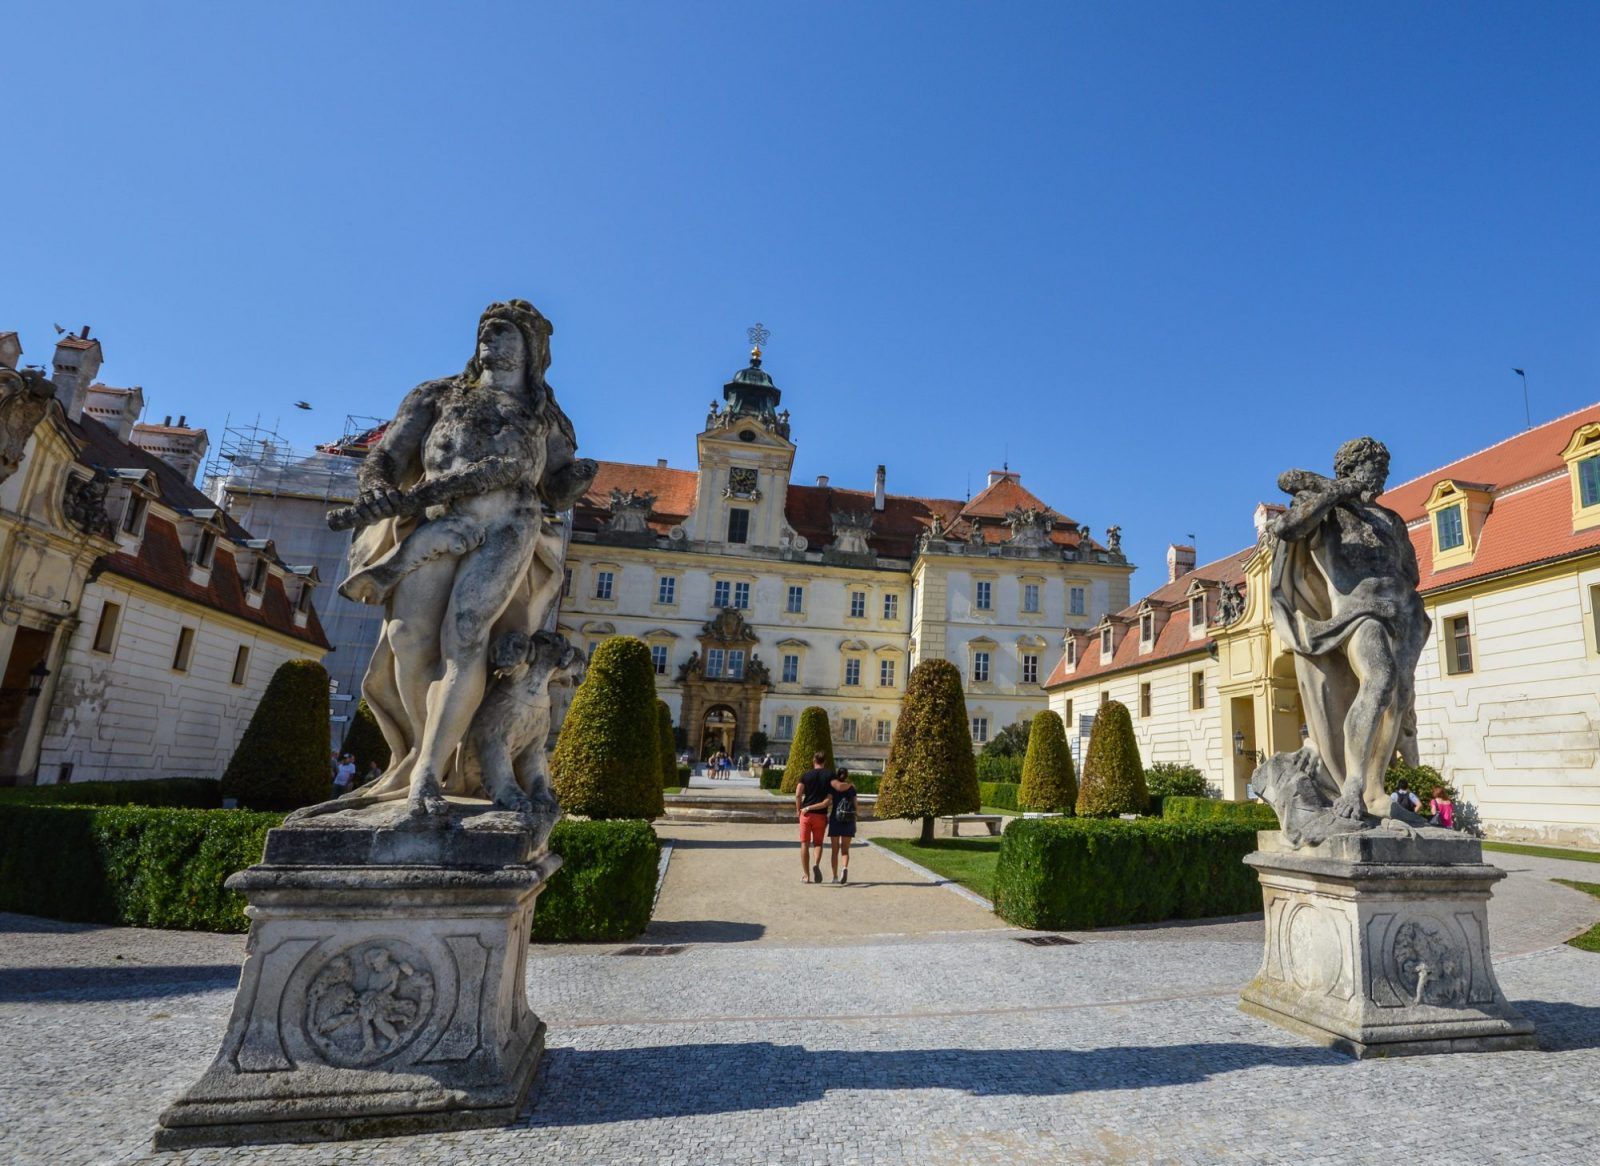 Valtice Palace in Moravia